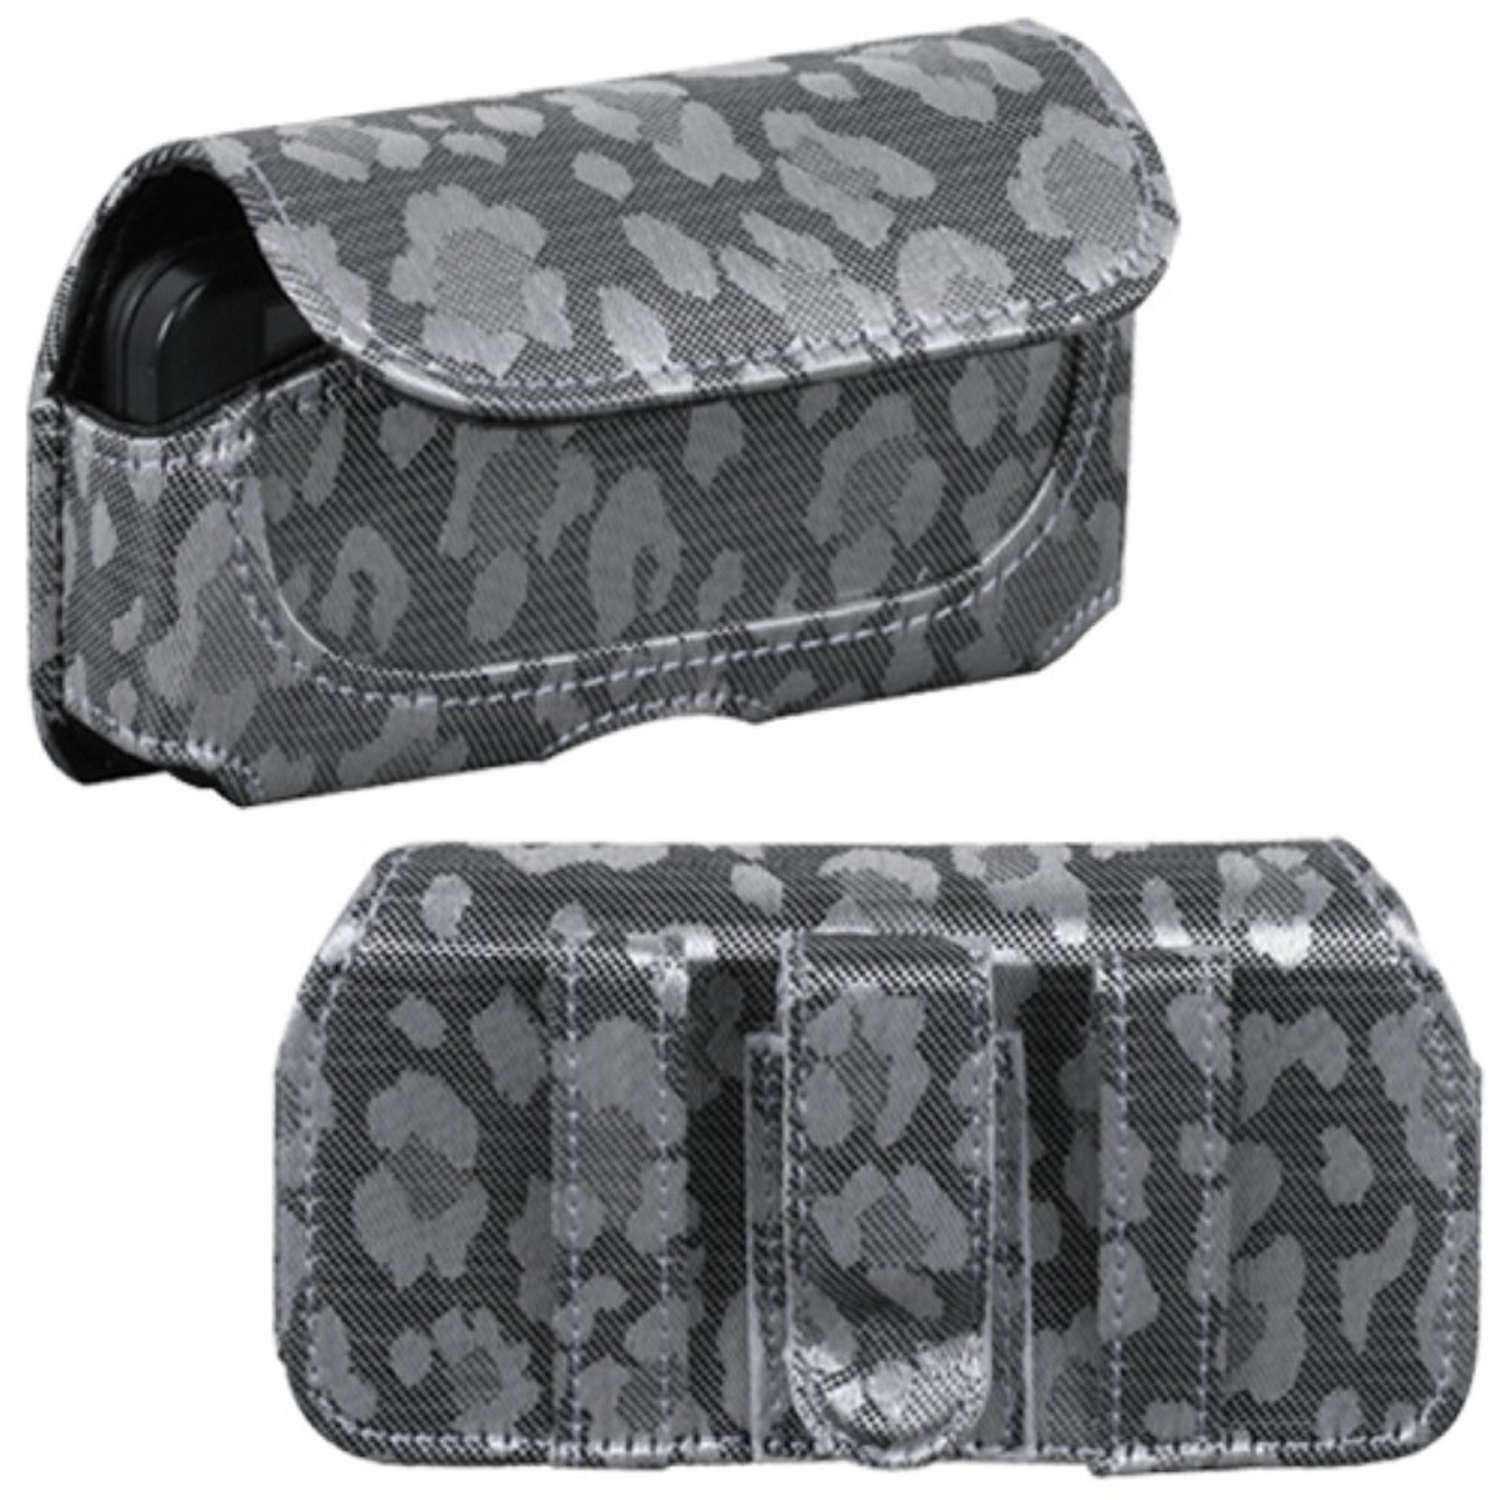 Insten Horizontal Pouch Case (723503)(Silver & Gray Watermark) (NO Package) for SAMSUNG: M850 (Instinct HD); HTC: G1